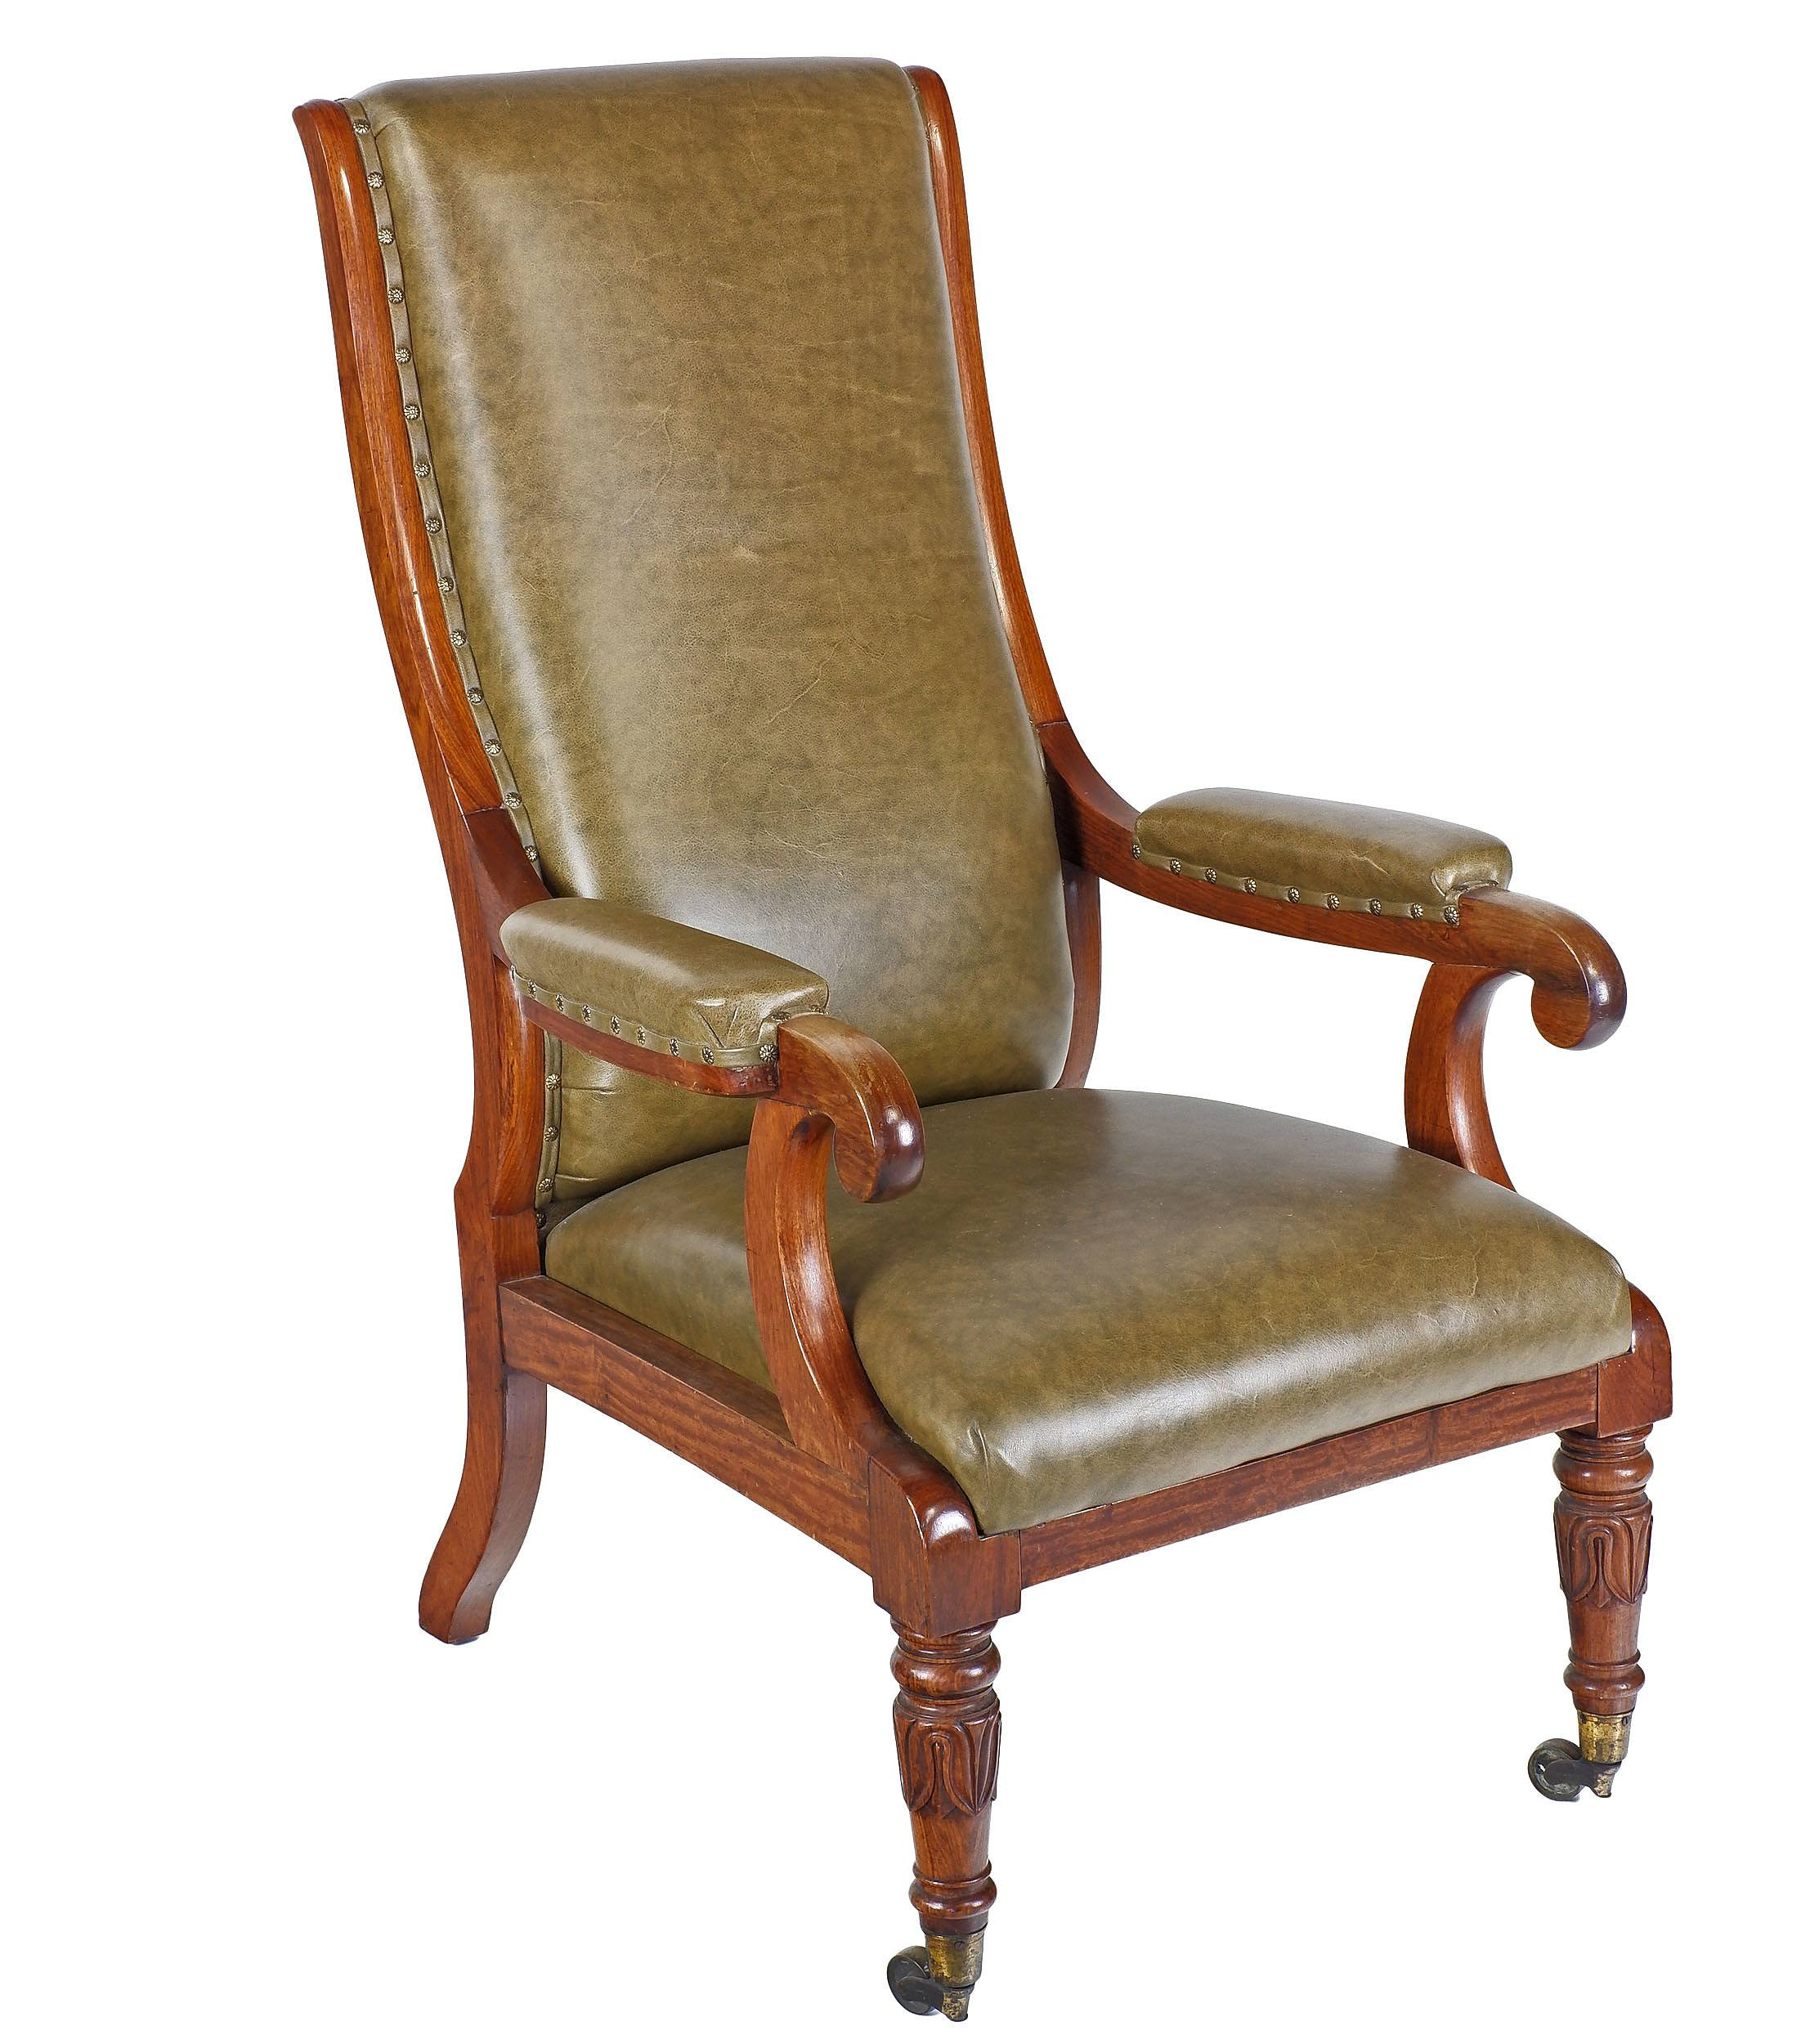 'William IV Padouk (Rosewood) High Back Upholstered Library Chair with Olive Green Leather Upholstery Circa 1835'